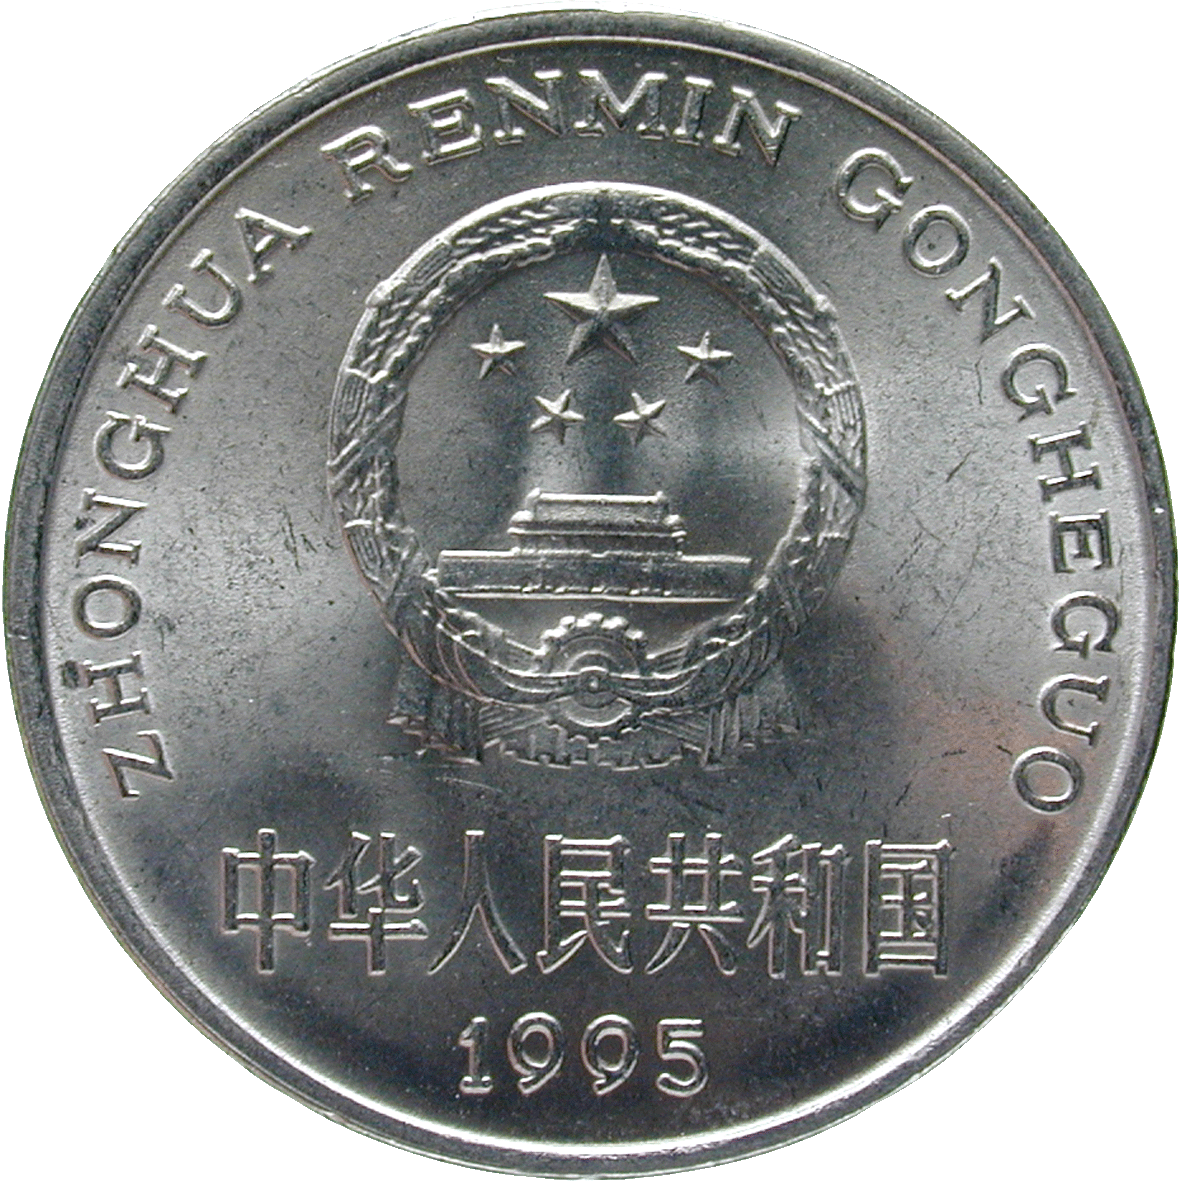 Volksrepublik China, 1 Yuan 1995 (obverse)